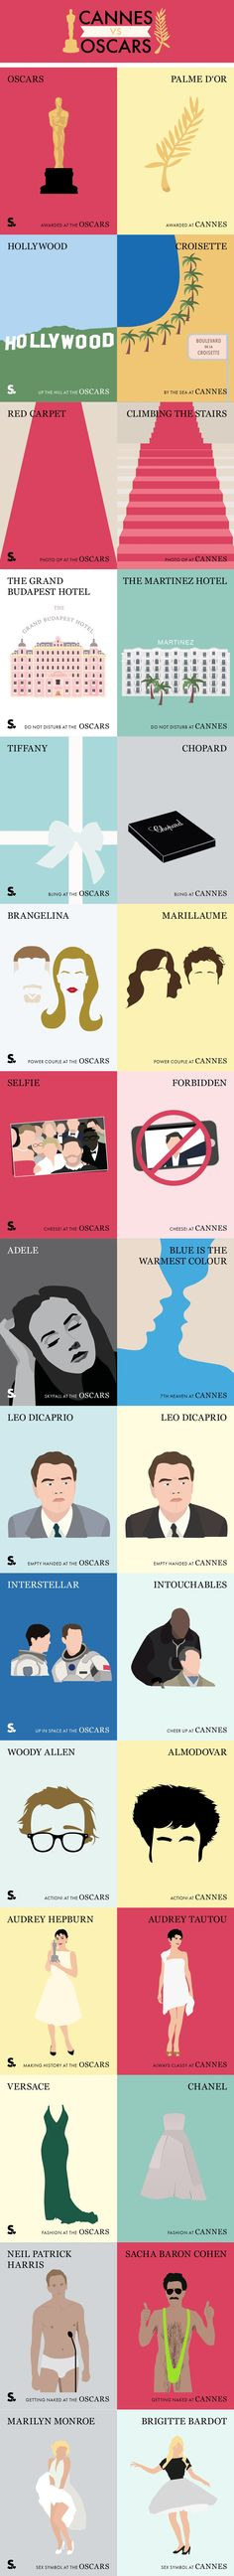 Cannes vs. The Oscars #infographic #Oscars #Cannes #Lifestyle #Fashion